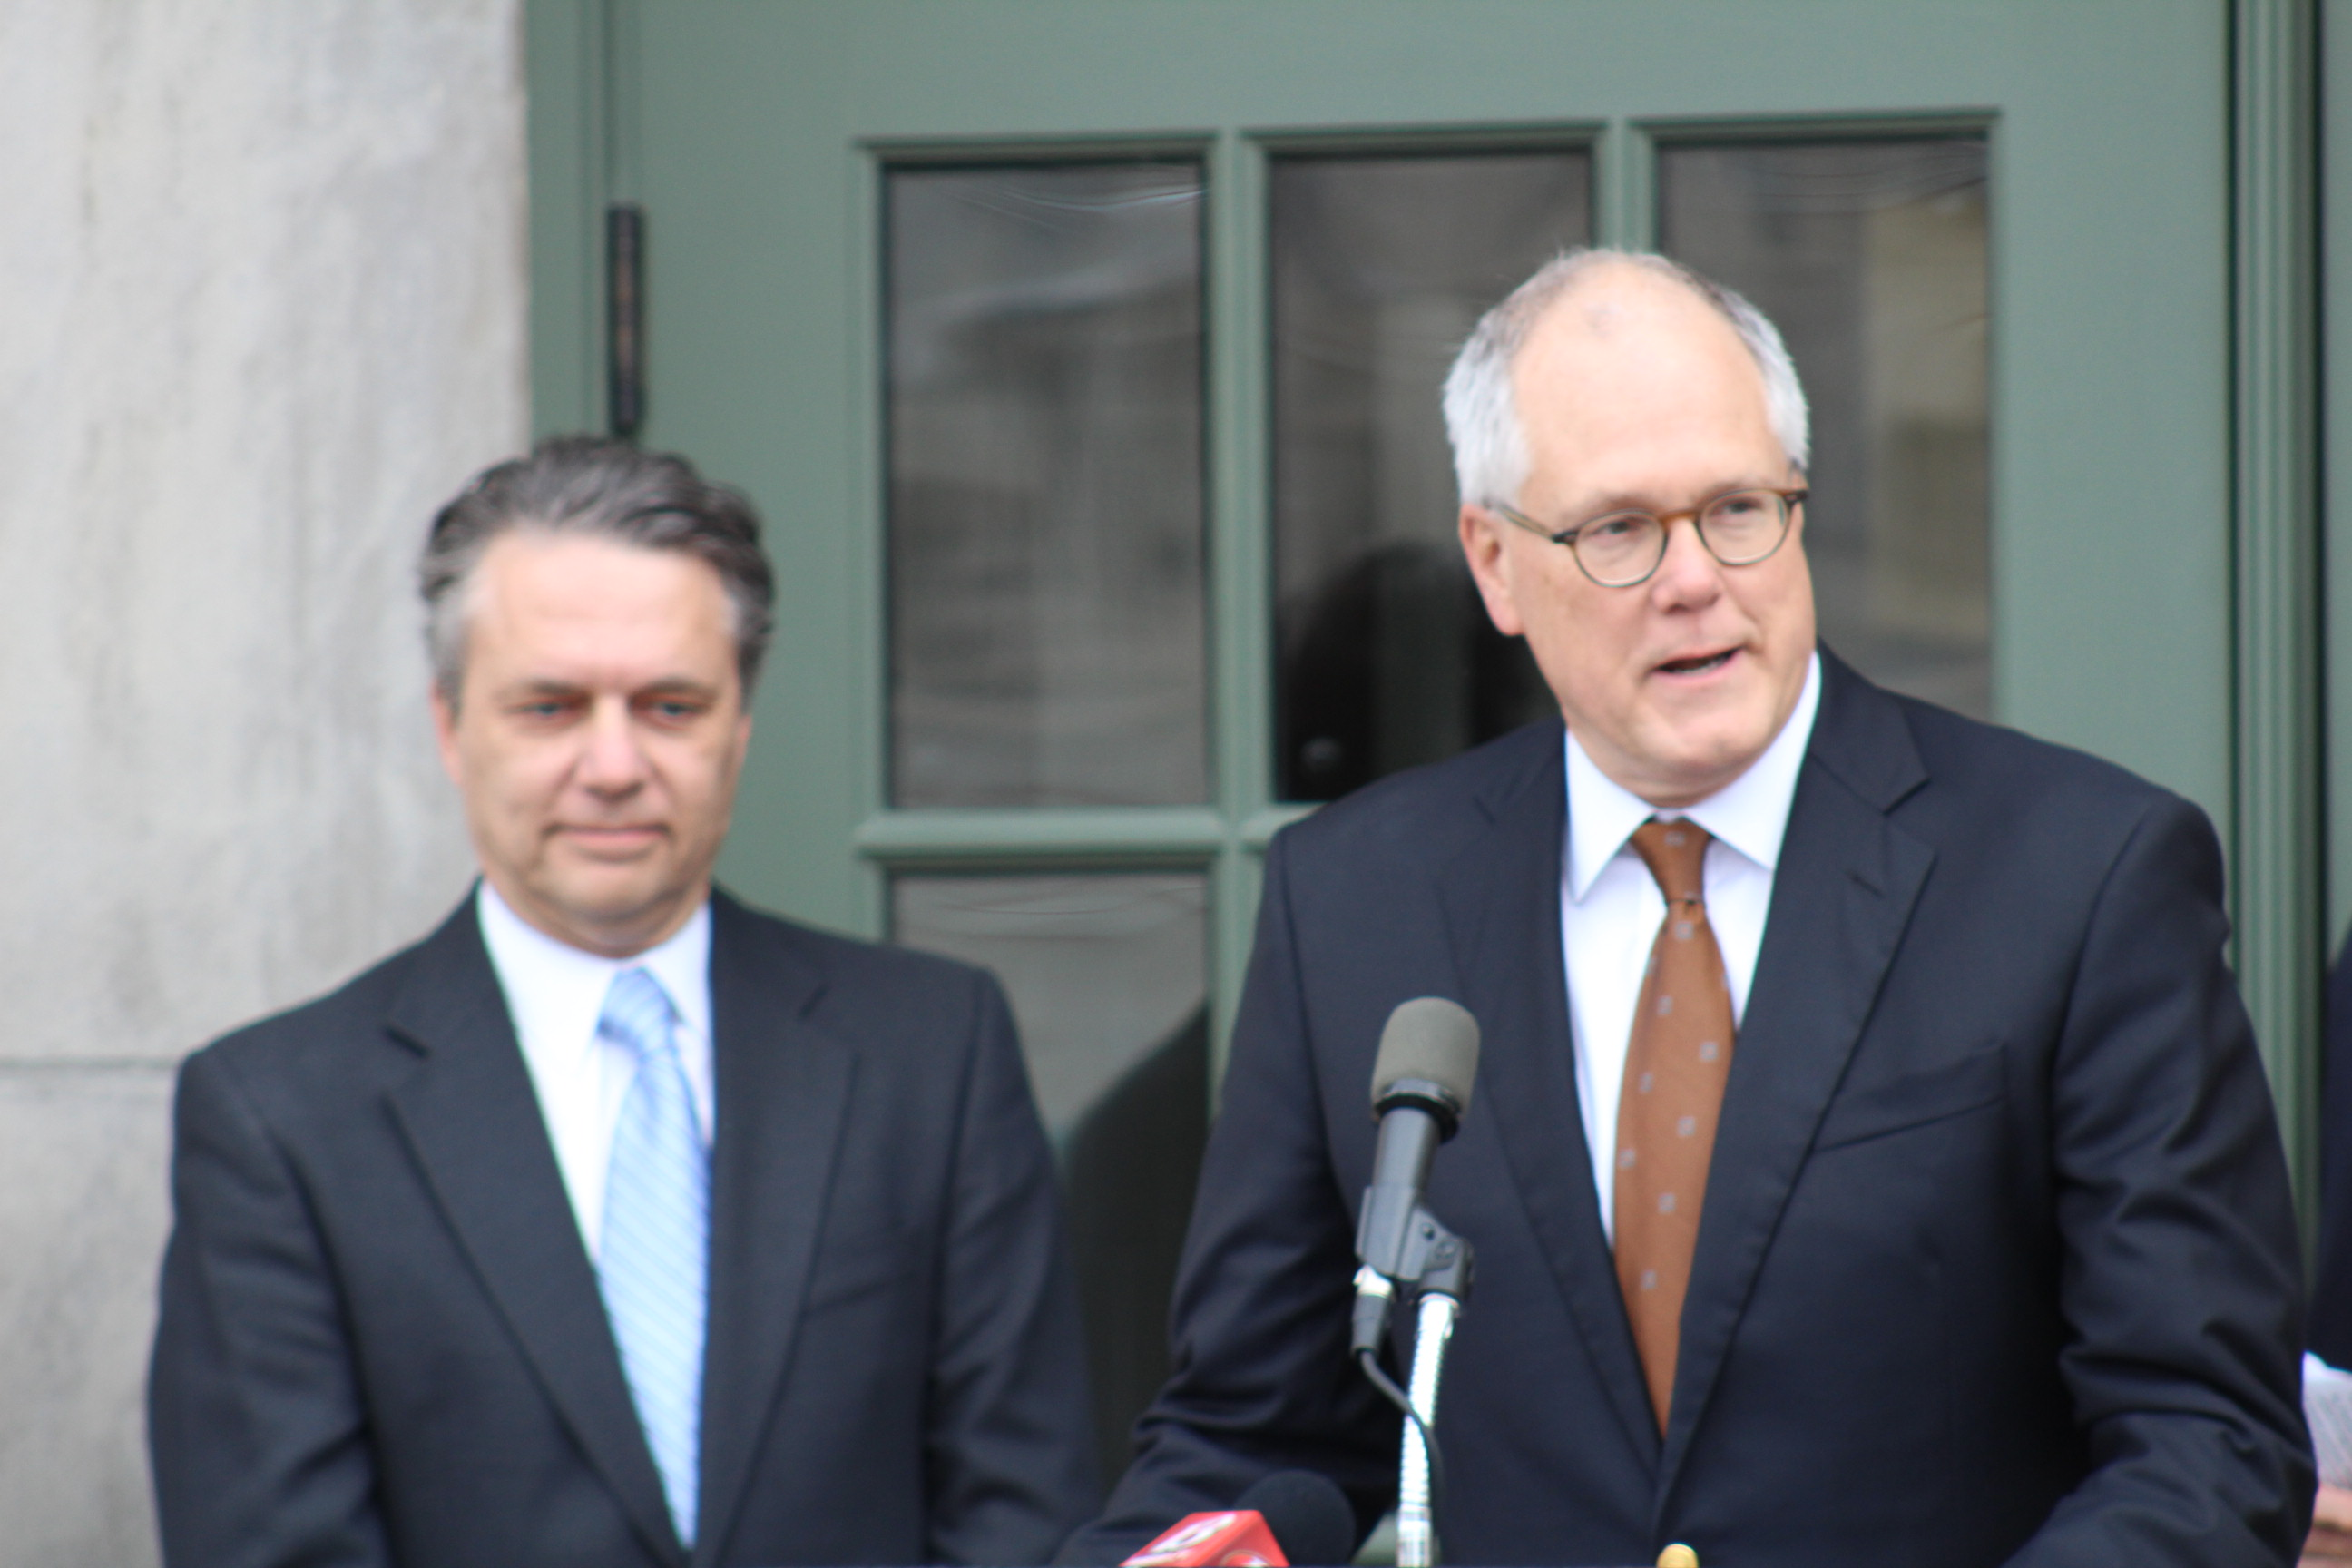 Lt. Governor Dr. Jeff Colyer (left) and CEO of the Kansas Health Institute (KHI) Dr. Bob St. Peter (right) at the dedication ceremony. (Photo by J. Schafer)